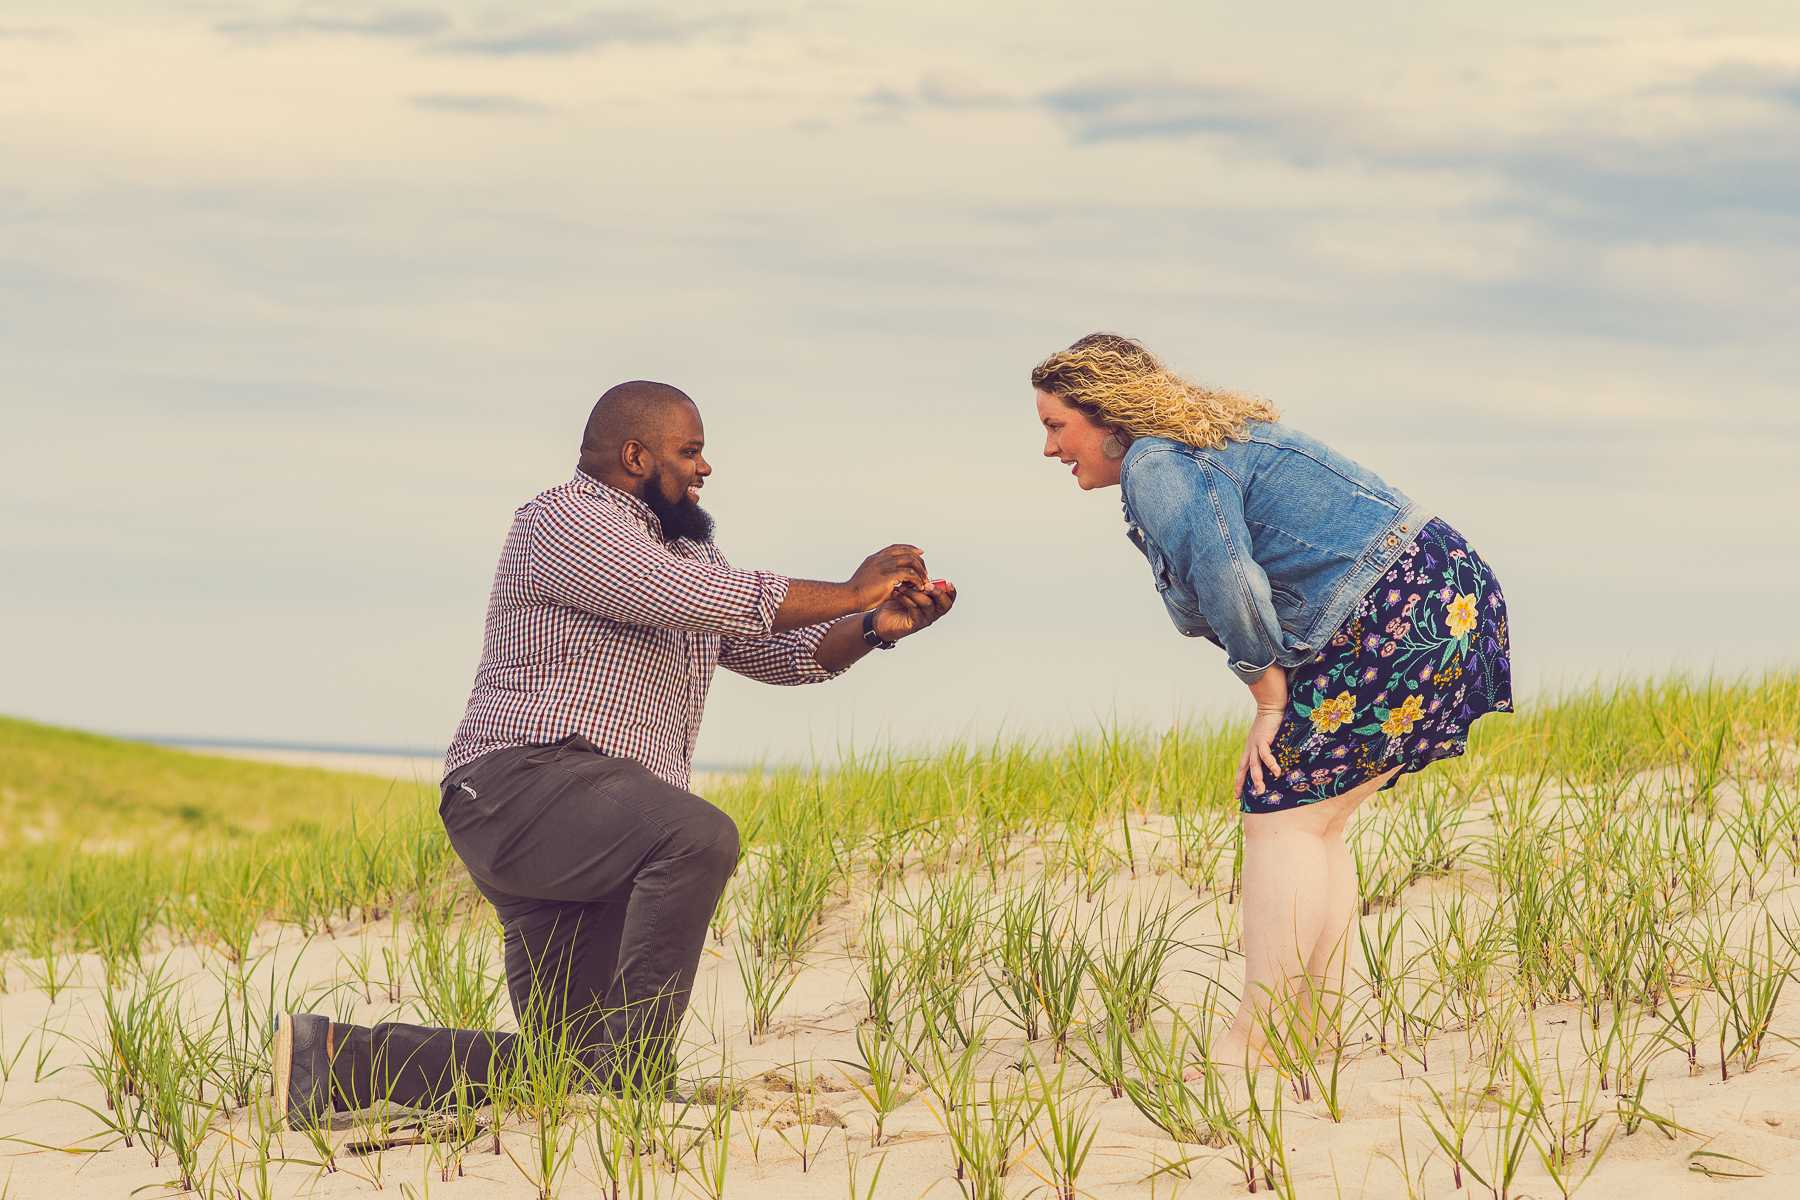 Image from a surprise proposal by Terrence Irving Photography   Ledyard, CT Portrait and Wedding Photographer.